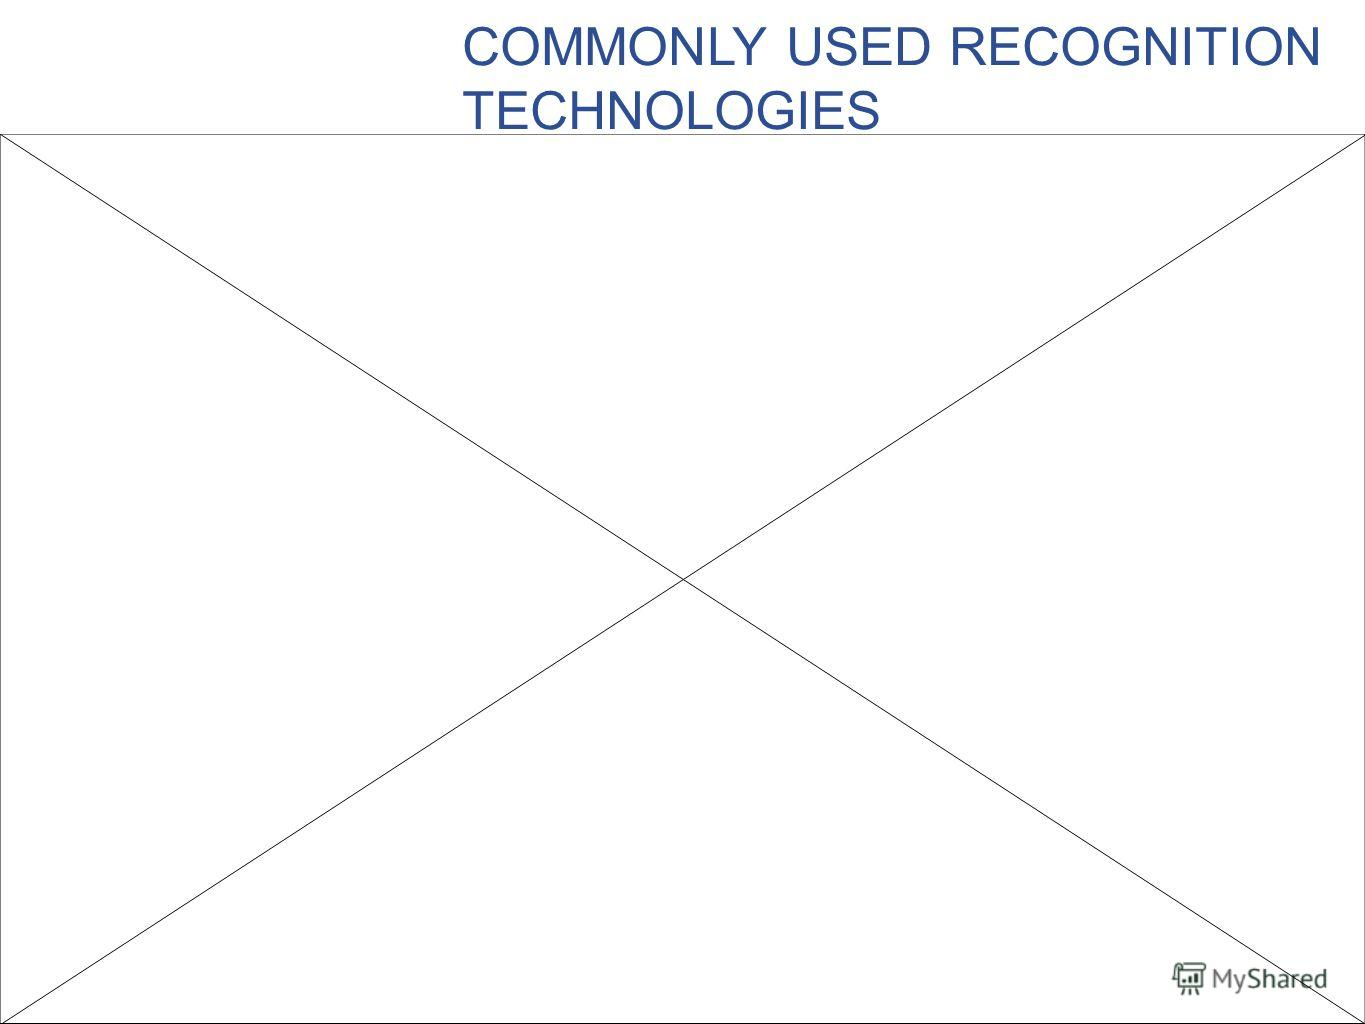 COMMONLY USED RECOGNITION TECHNOLOGIES